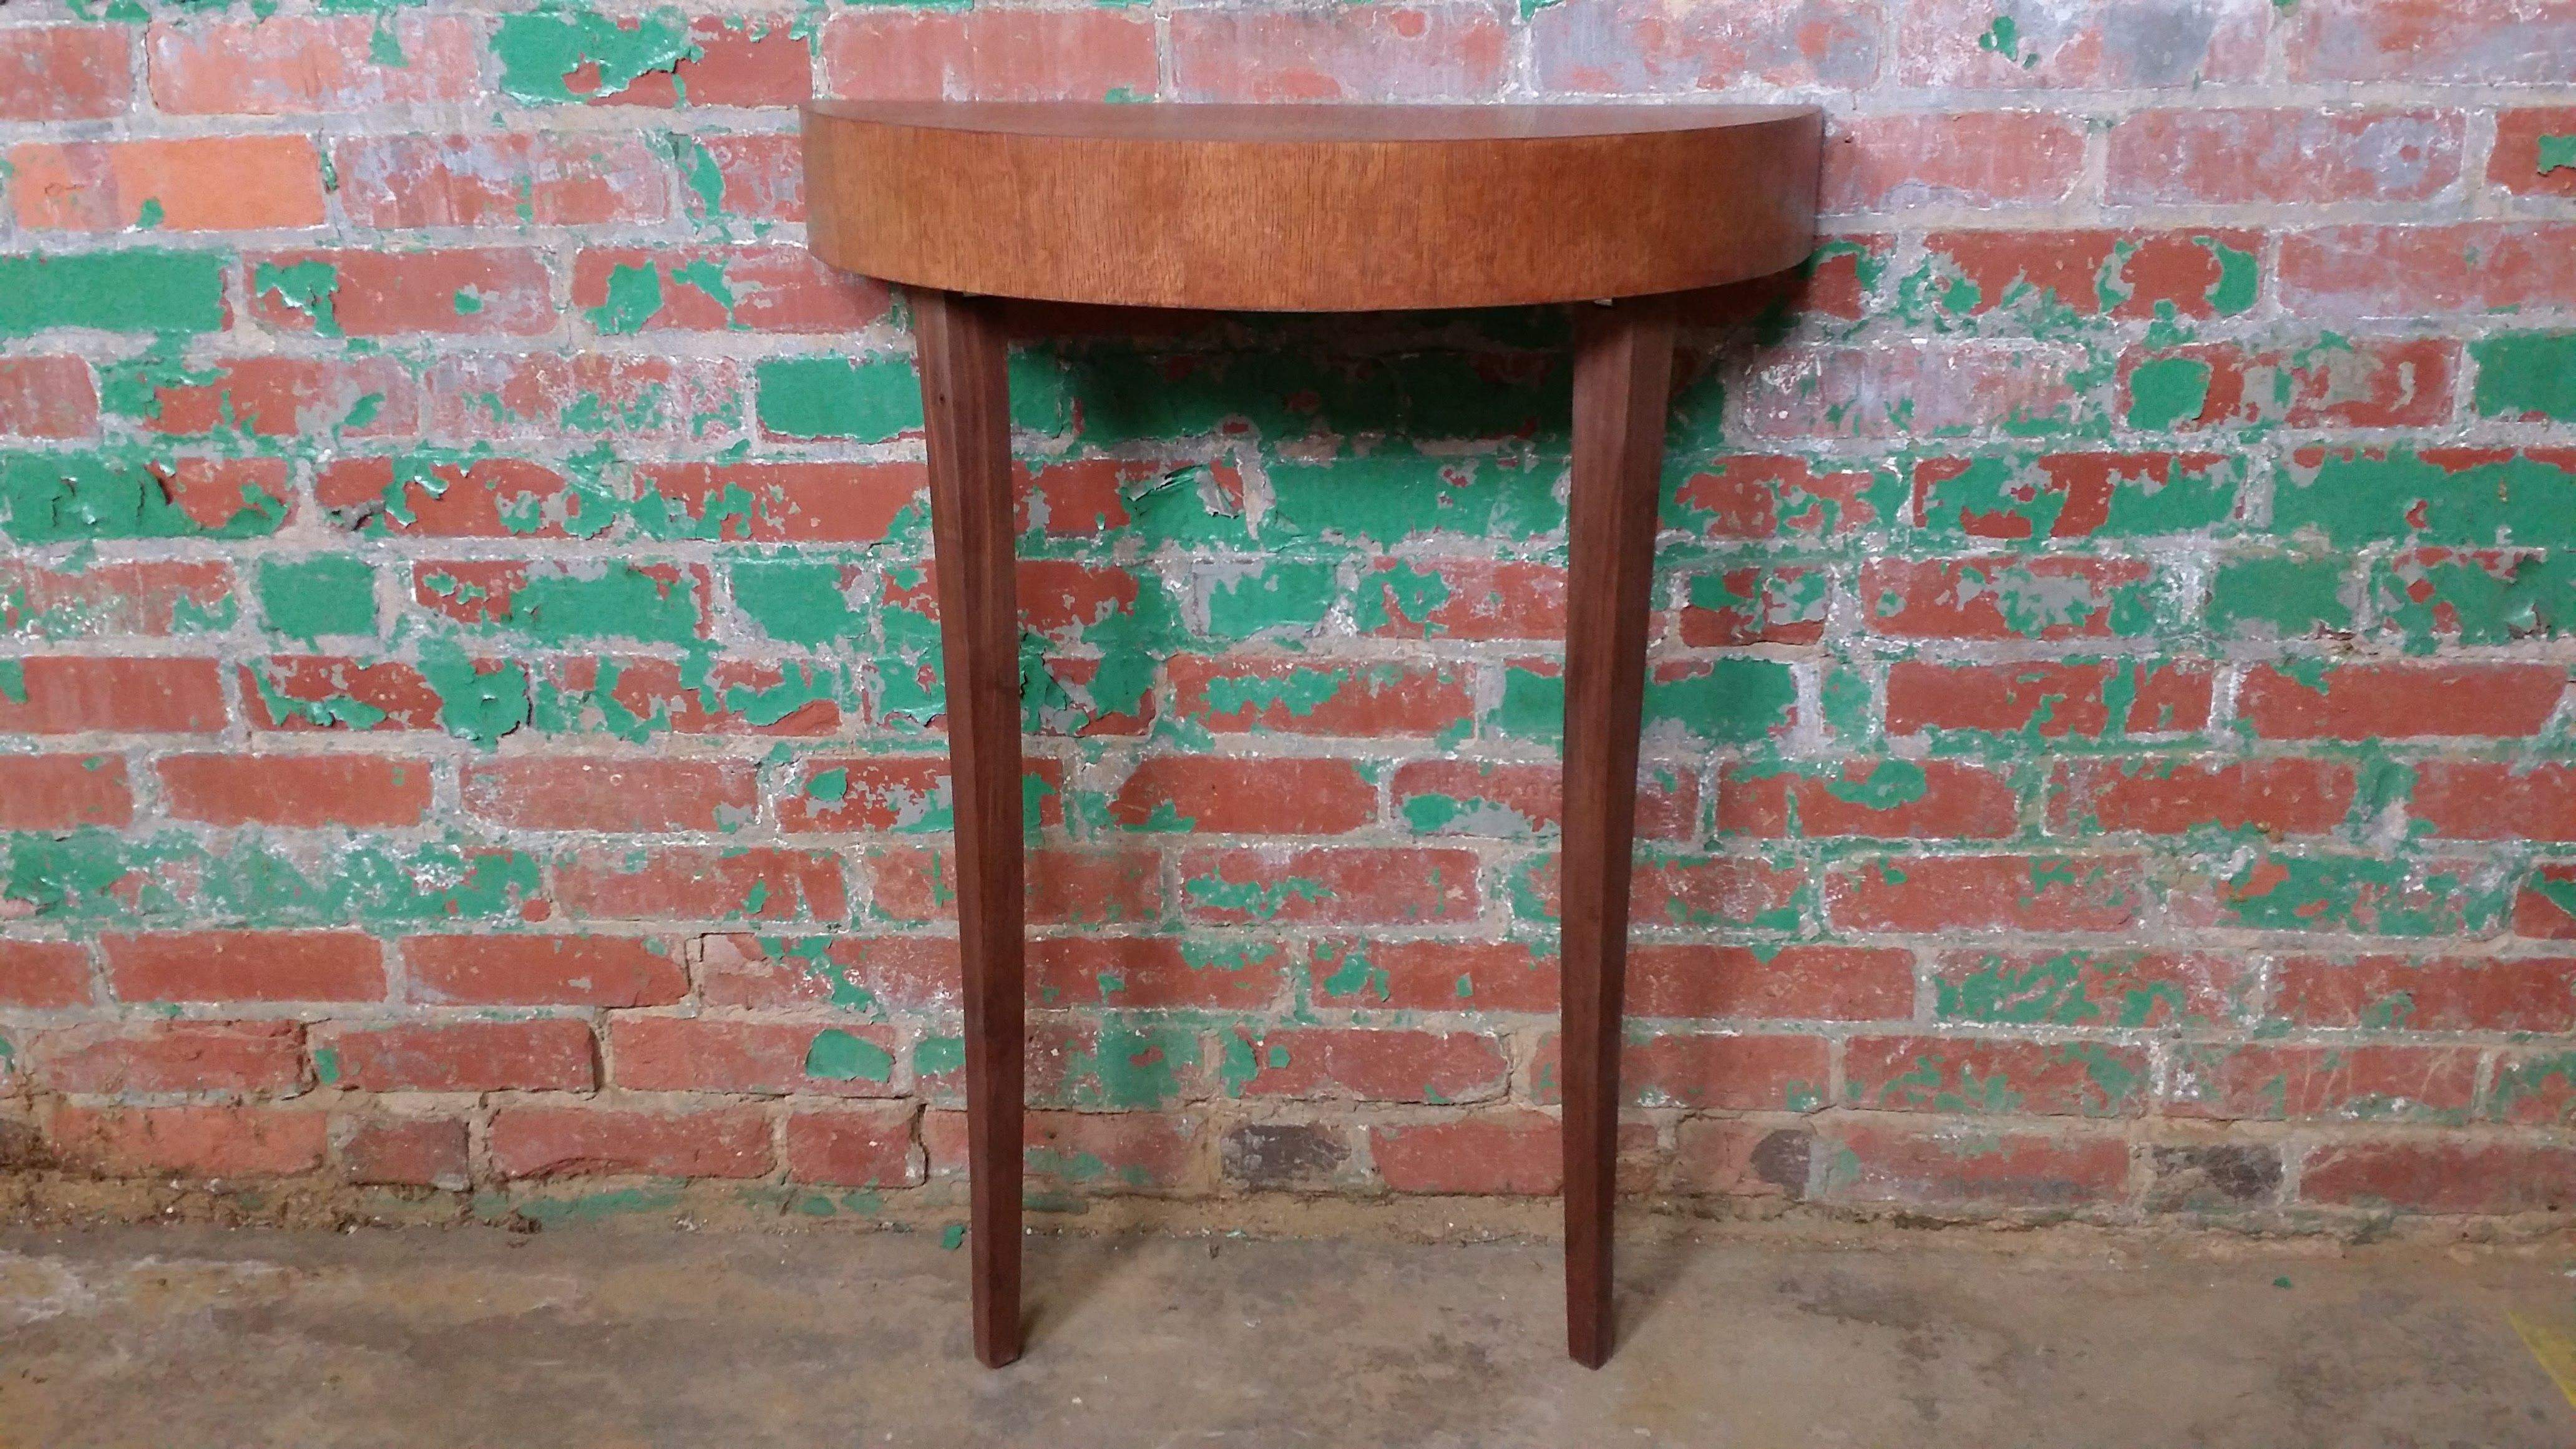 Entryway tables hall tables accent tables custom entry tables two legged leaning console table quarter sawn oak and black walnut geotapseo Choice Image